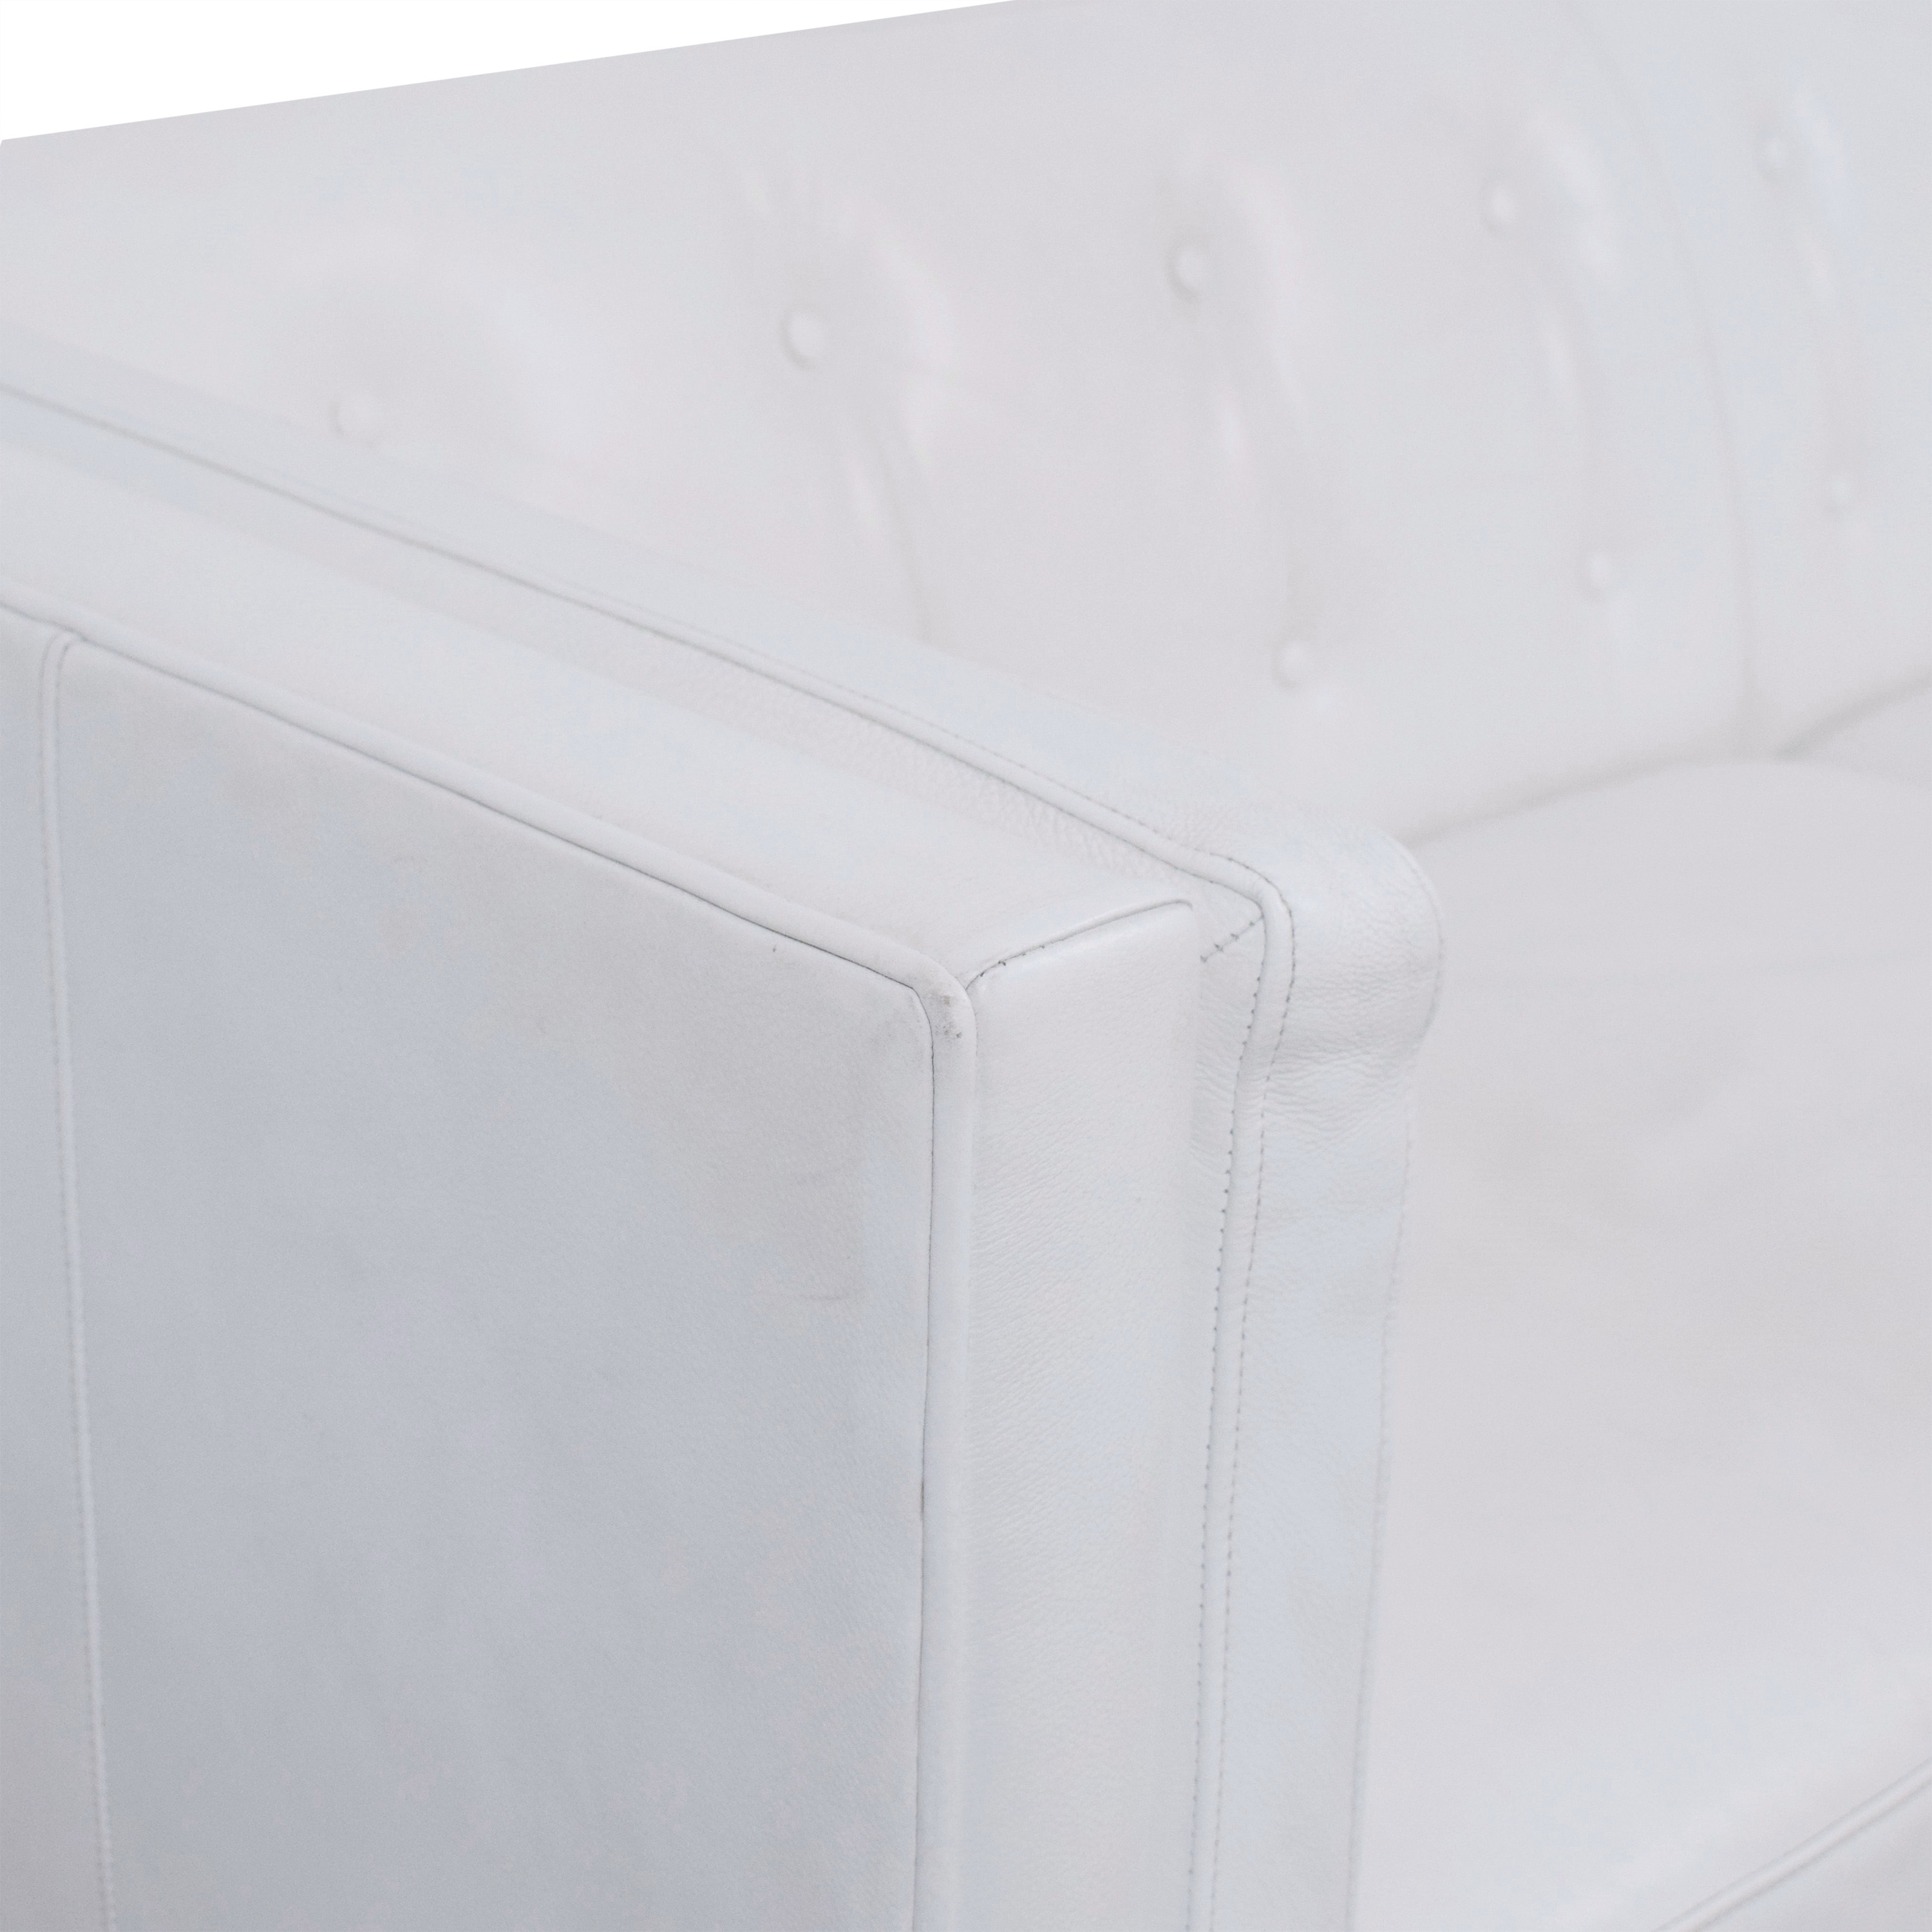 Crate & Barrel Crate & Barrel Aiden Tall Tufted Sofa white